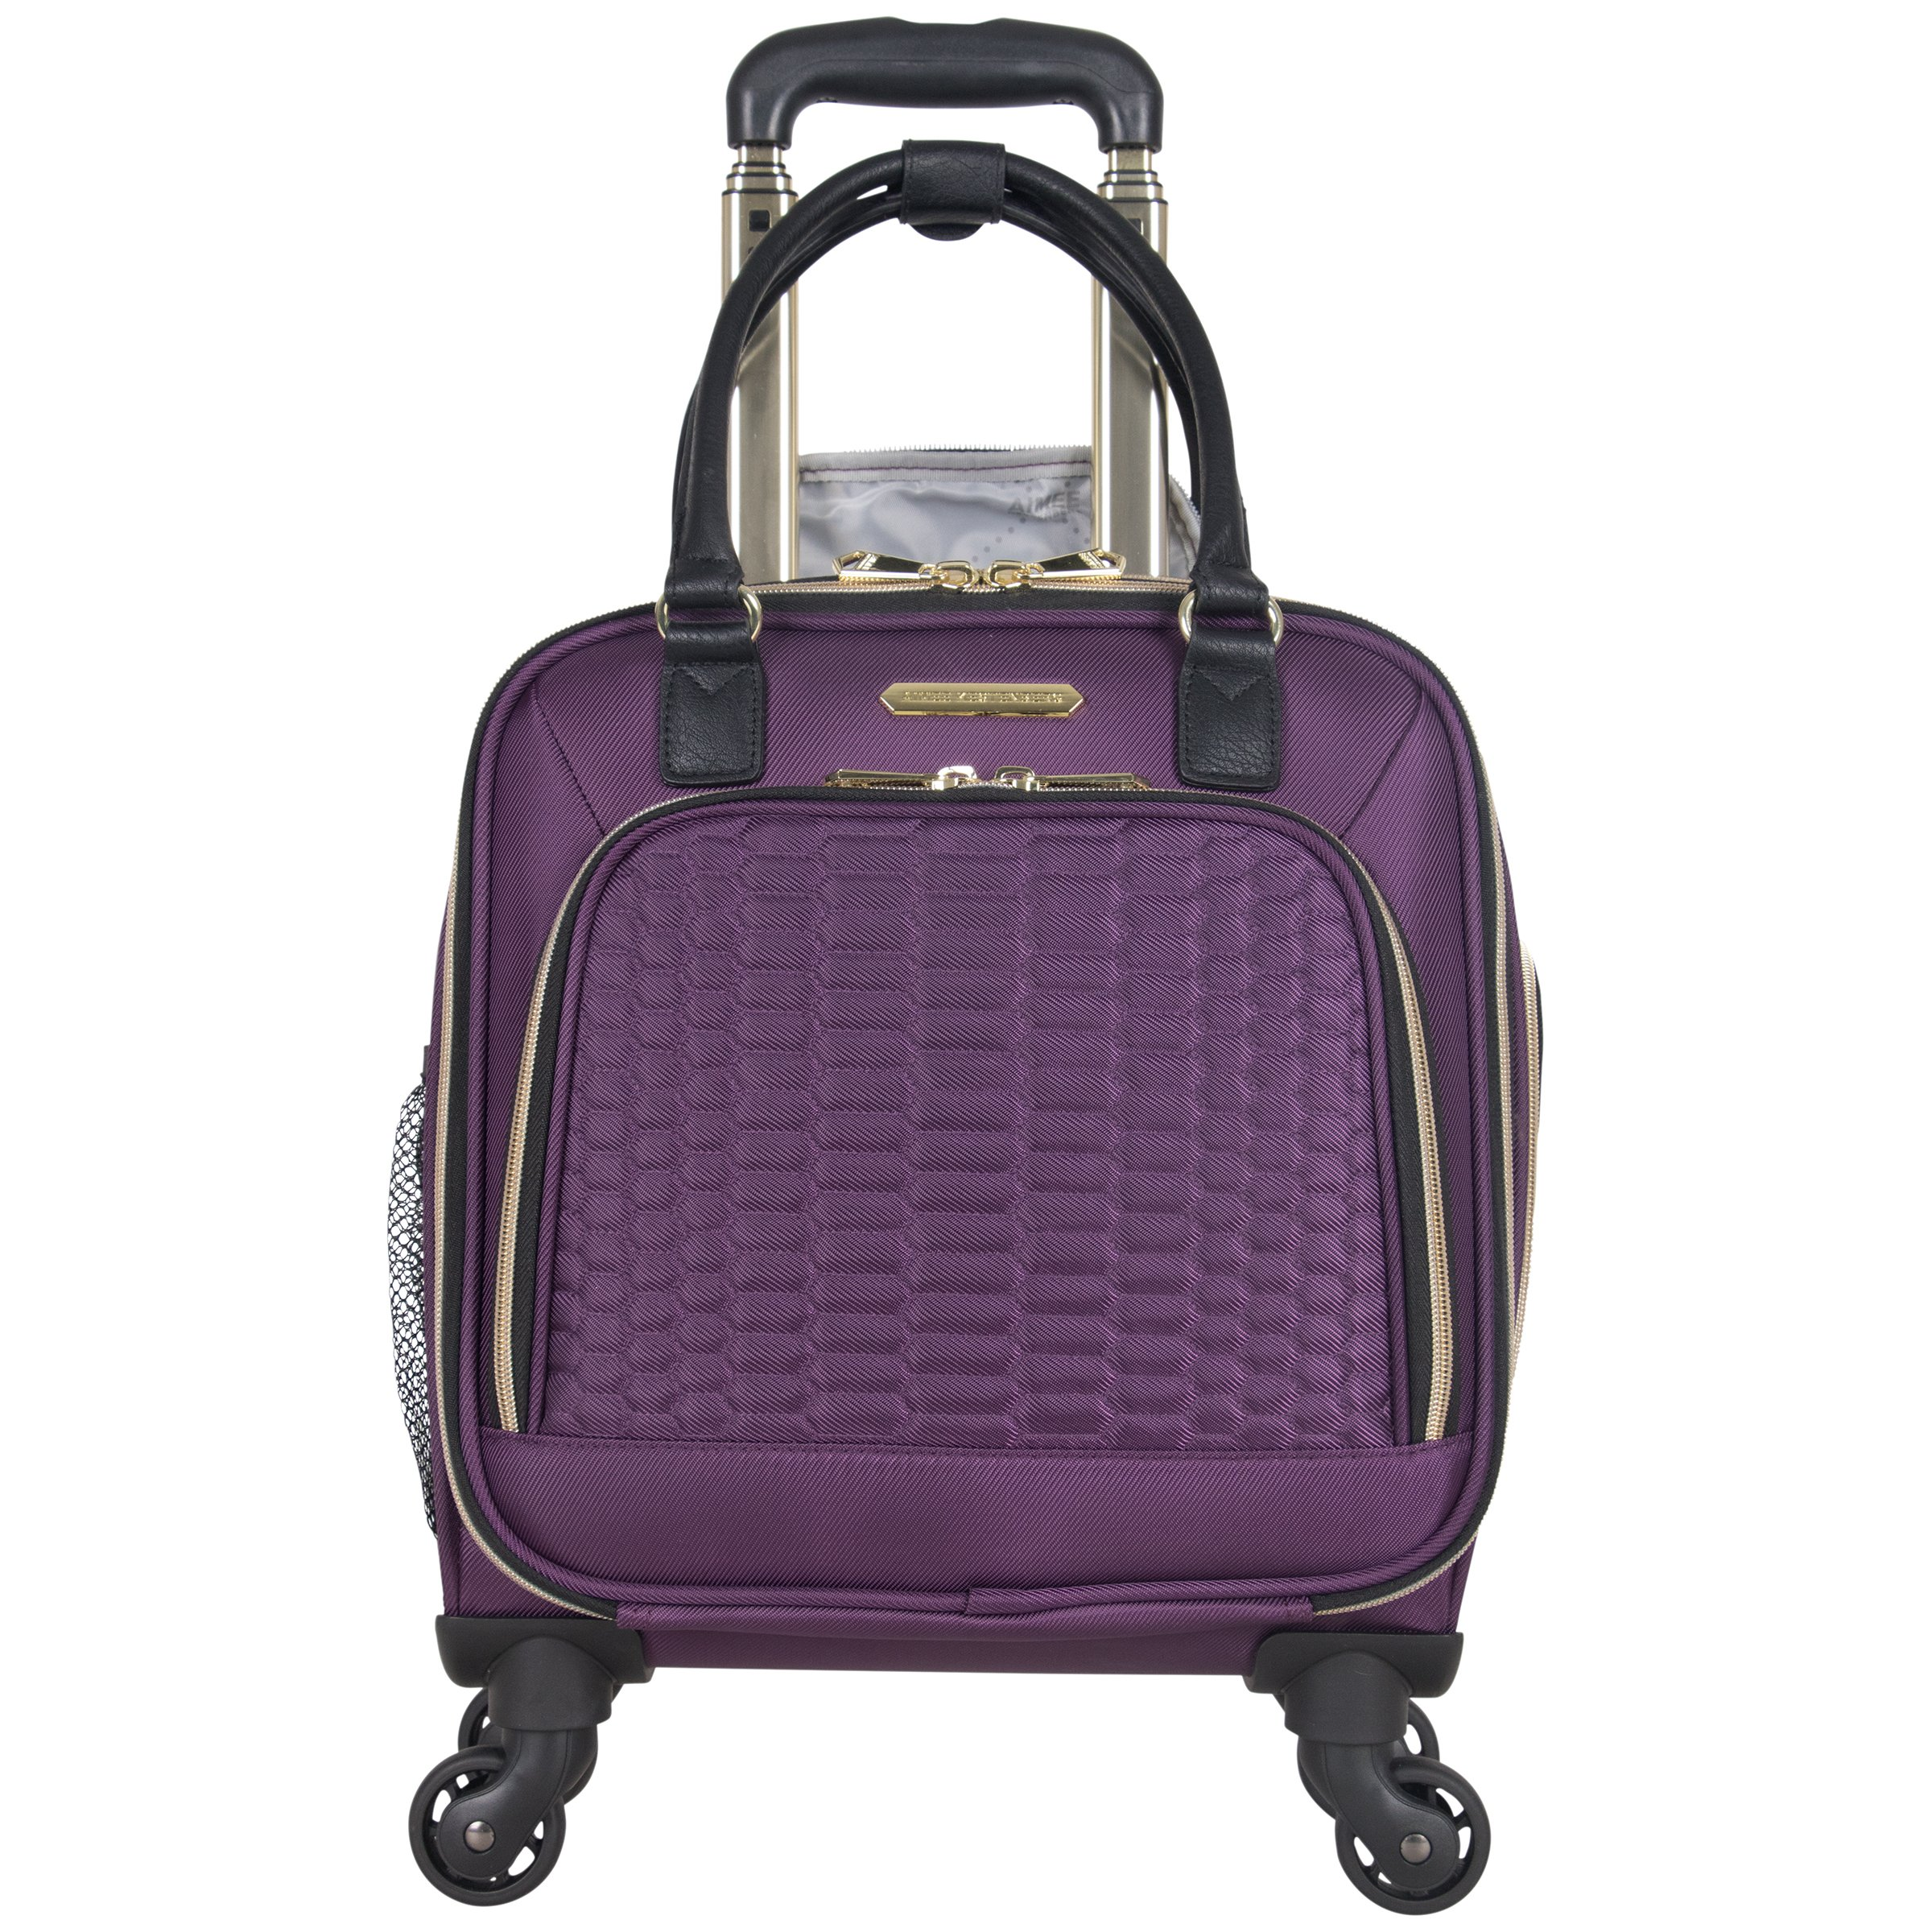 """63e514782 Aimee Kestenberg Women's Florence 16"""" Polyester Twill 4-Wheel Underseater  Carry-on Luggage, Plum"""